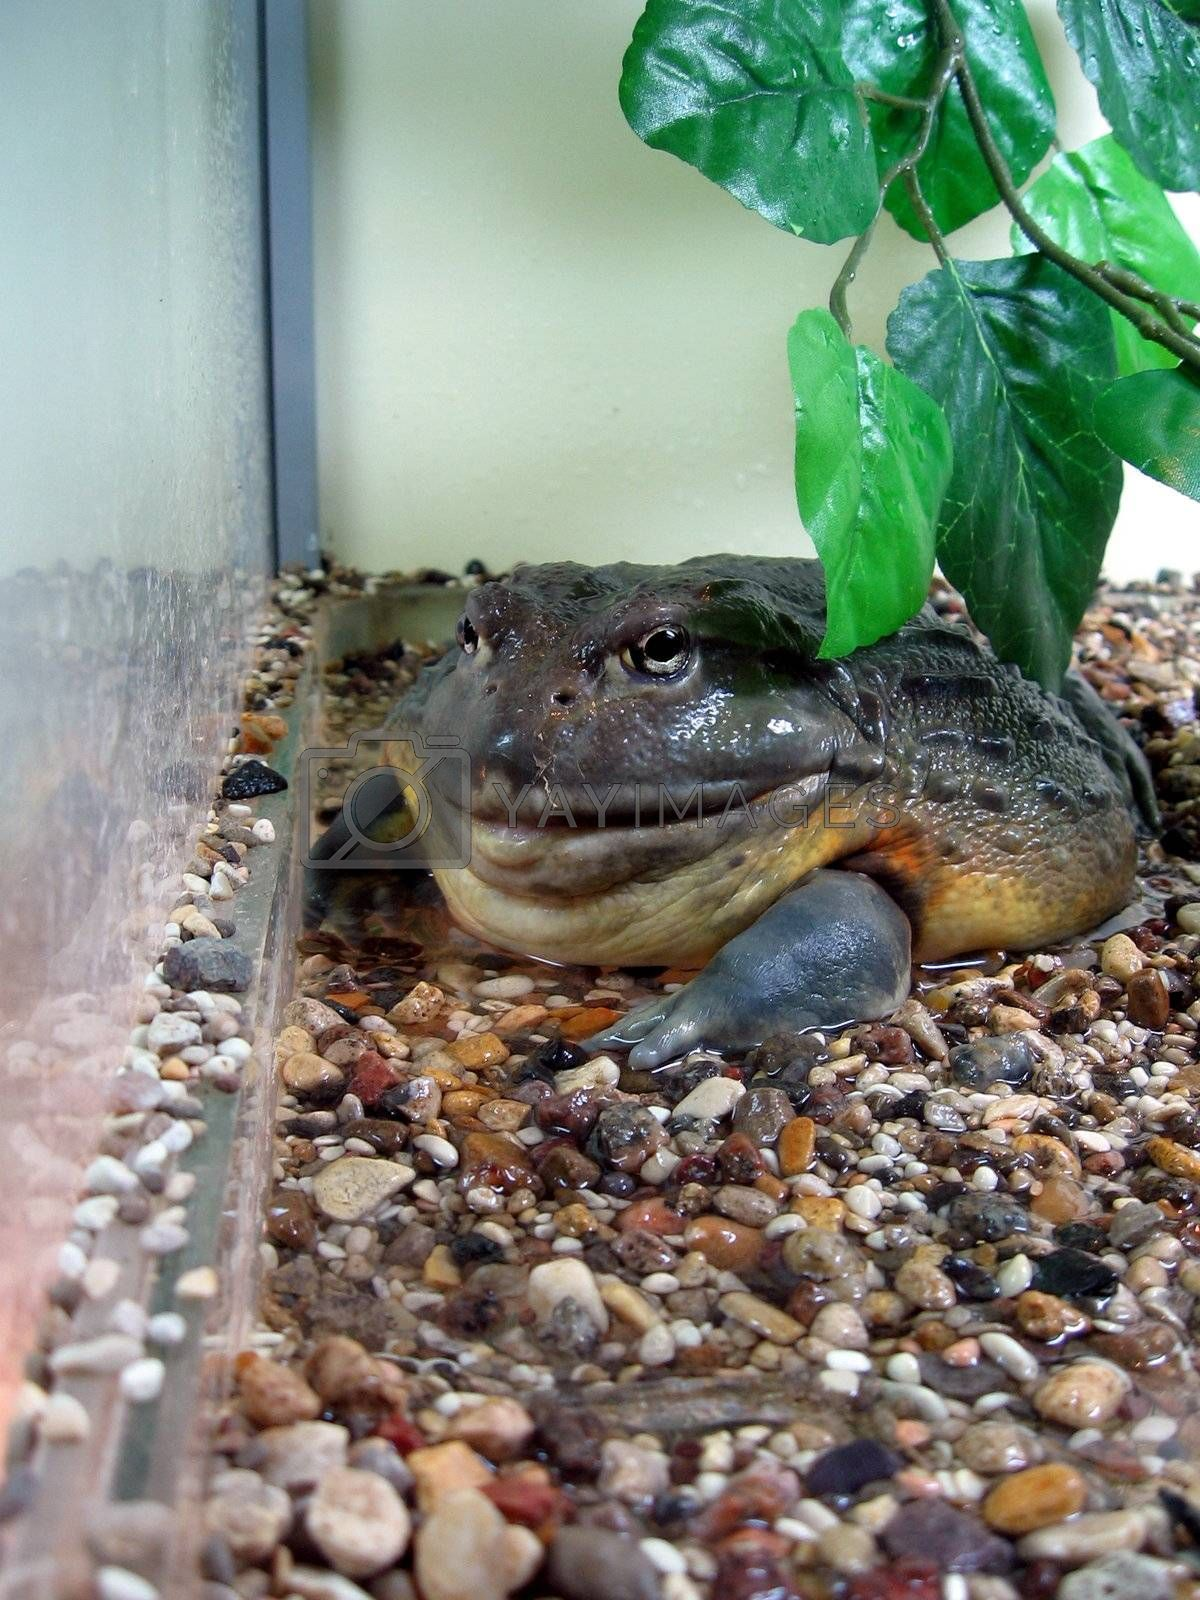 Large wet green toad sits among colored stones